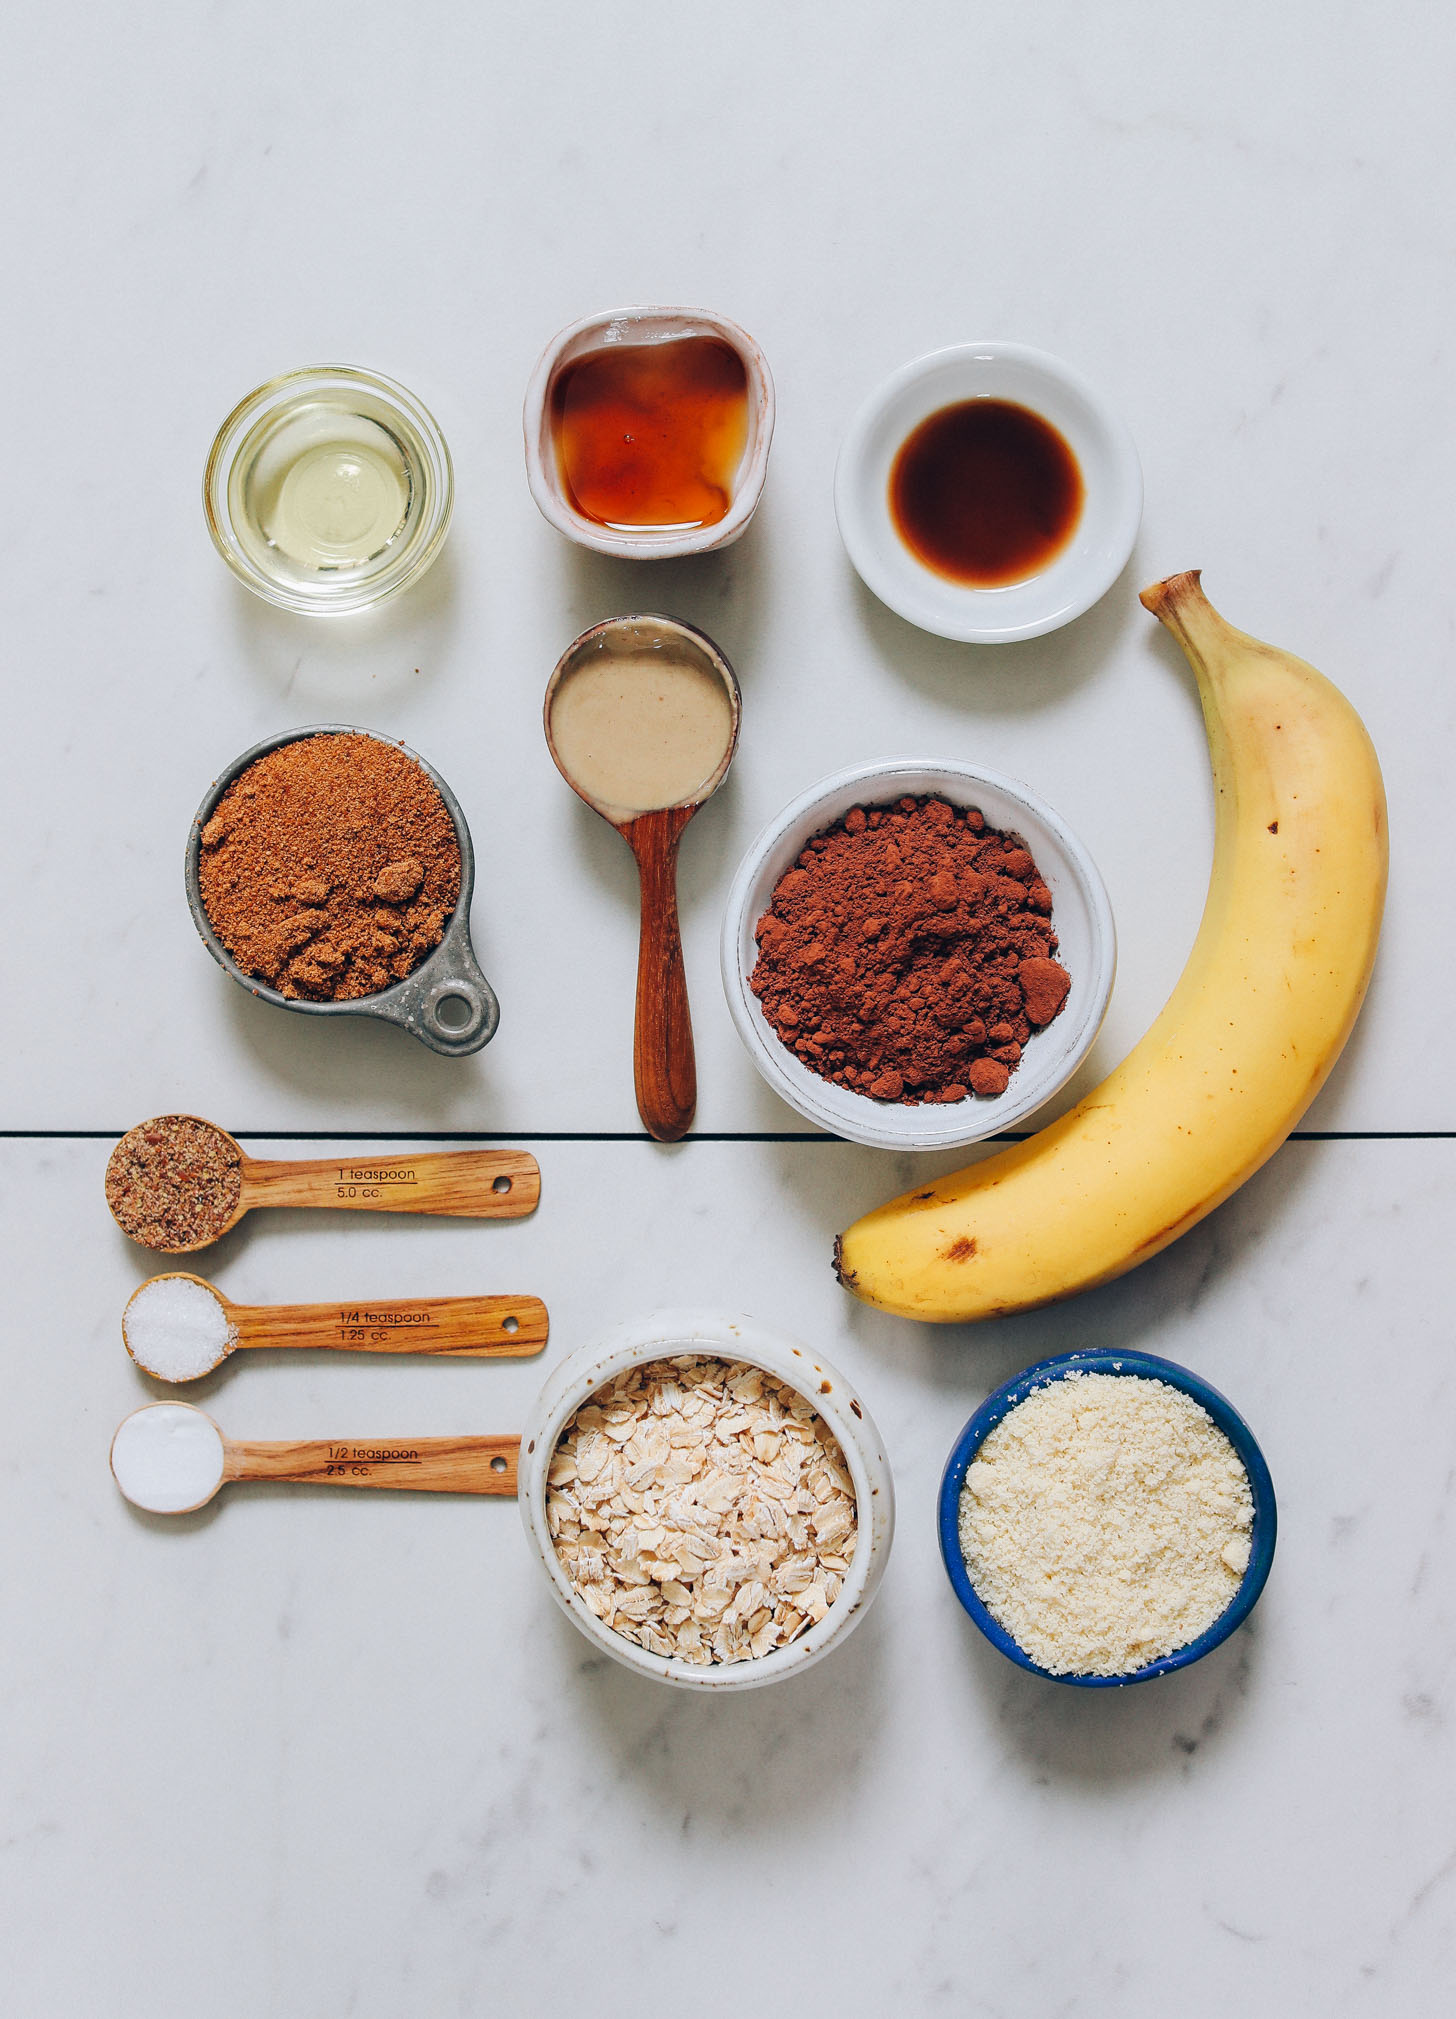 Banana, almond flour, oats, cocoa powder, coconut sugar, maple syrup, and other ingredients for making Banana Chocolate Muffins